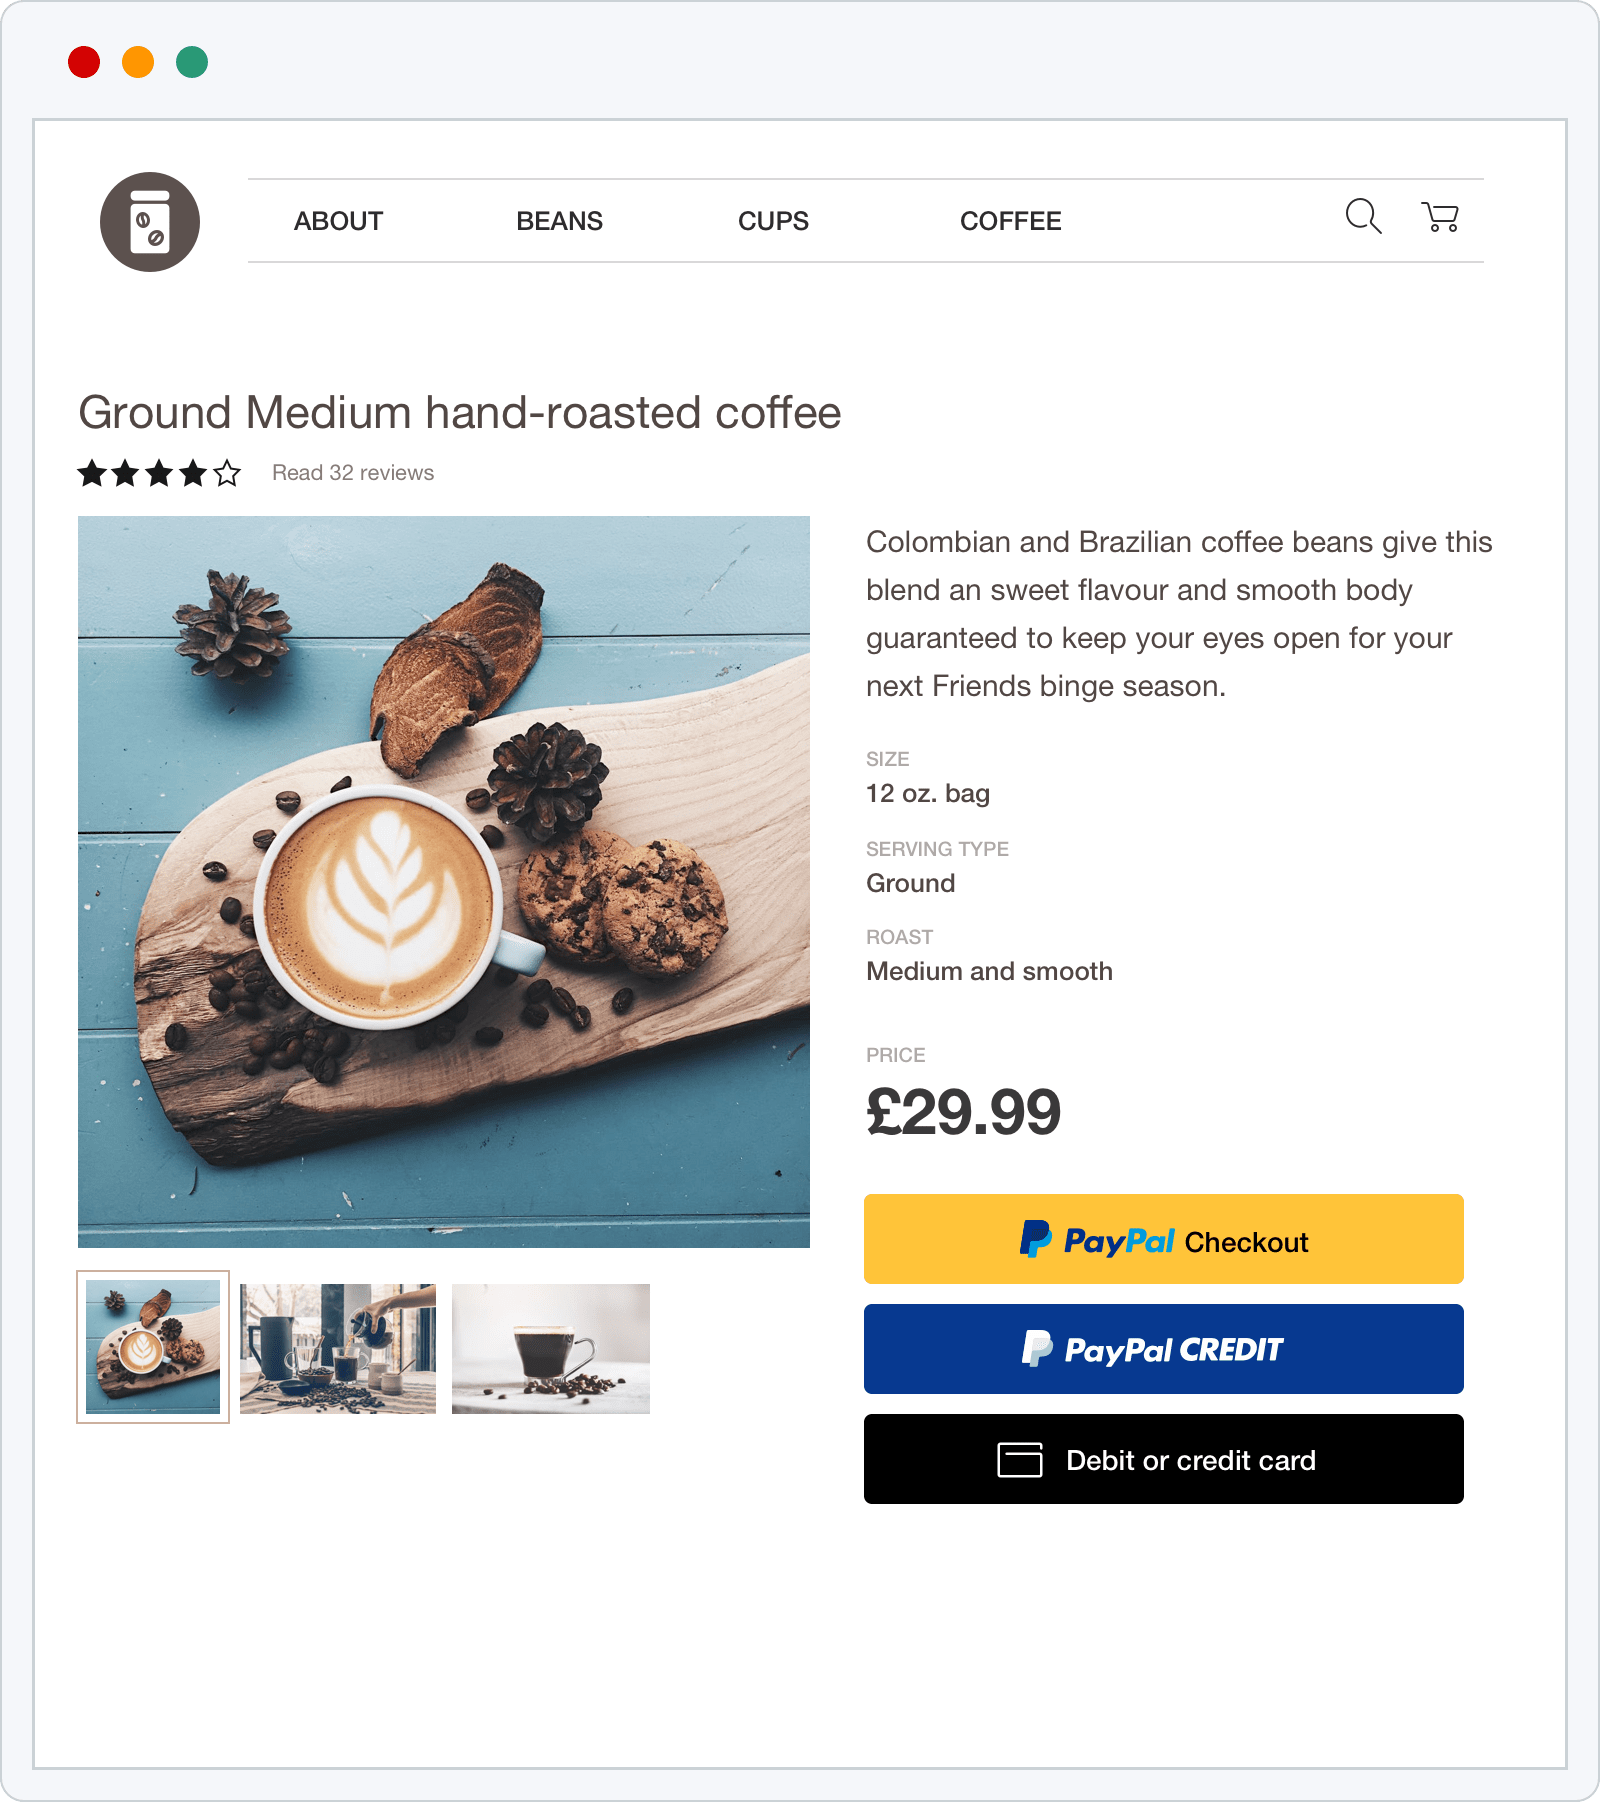 Paypal Integration Product page